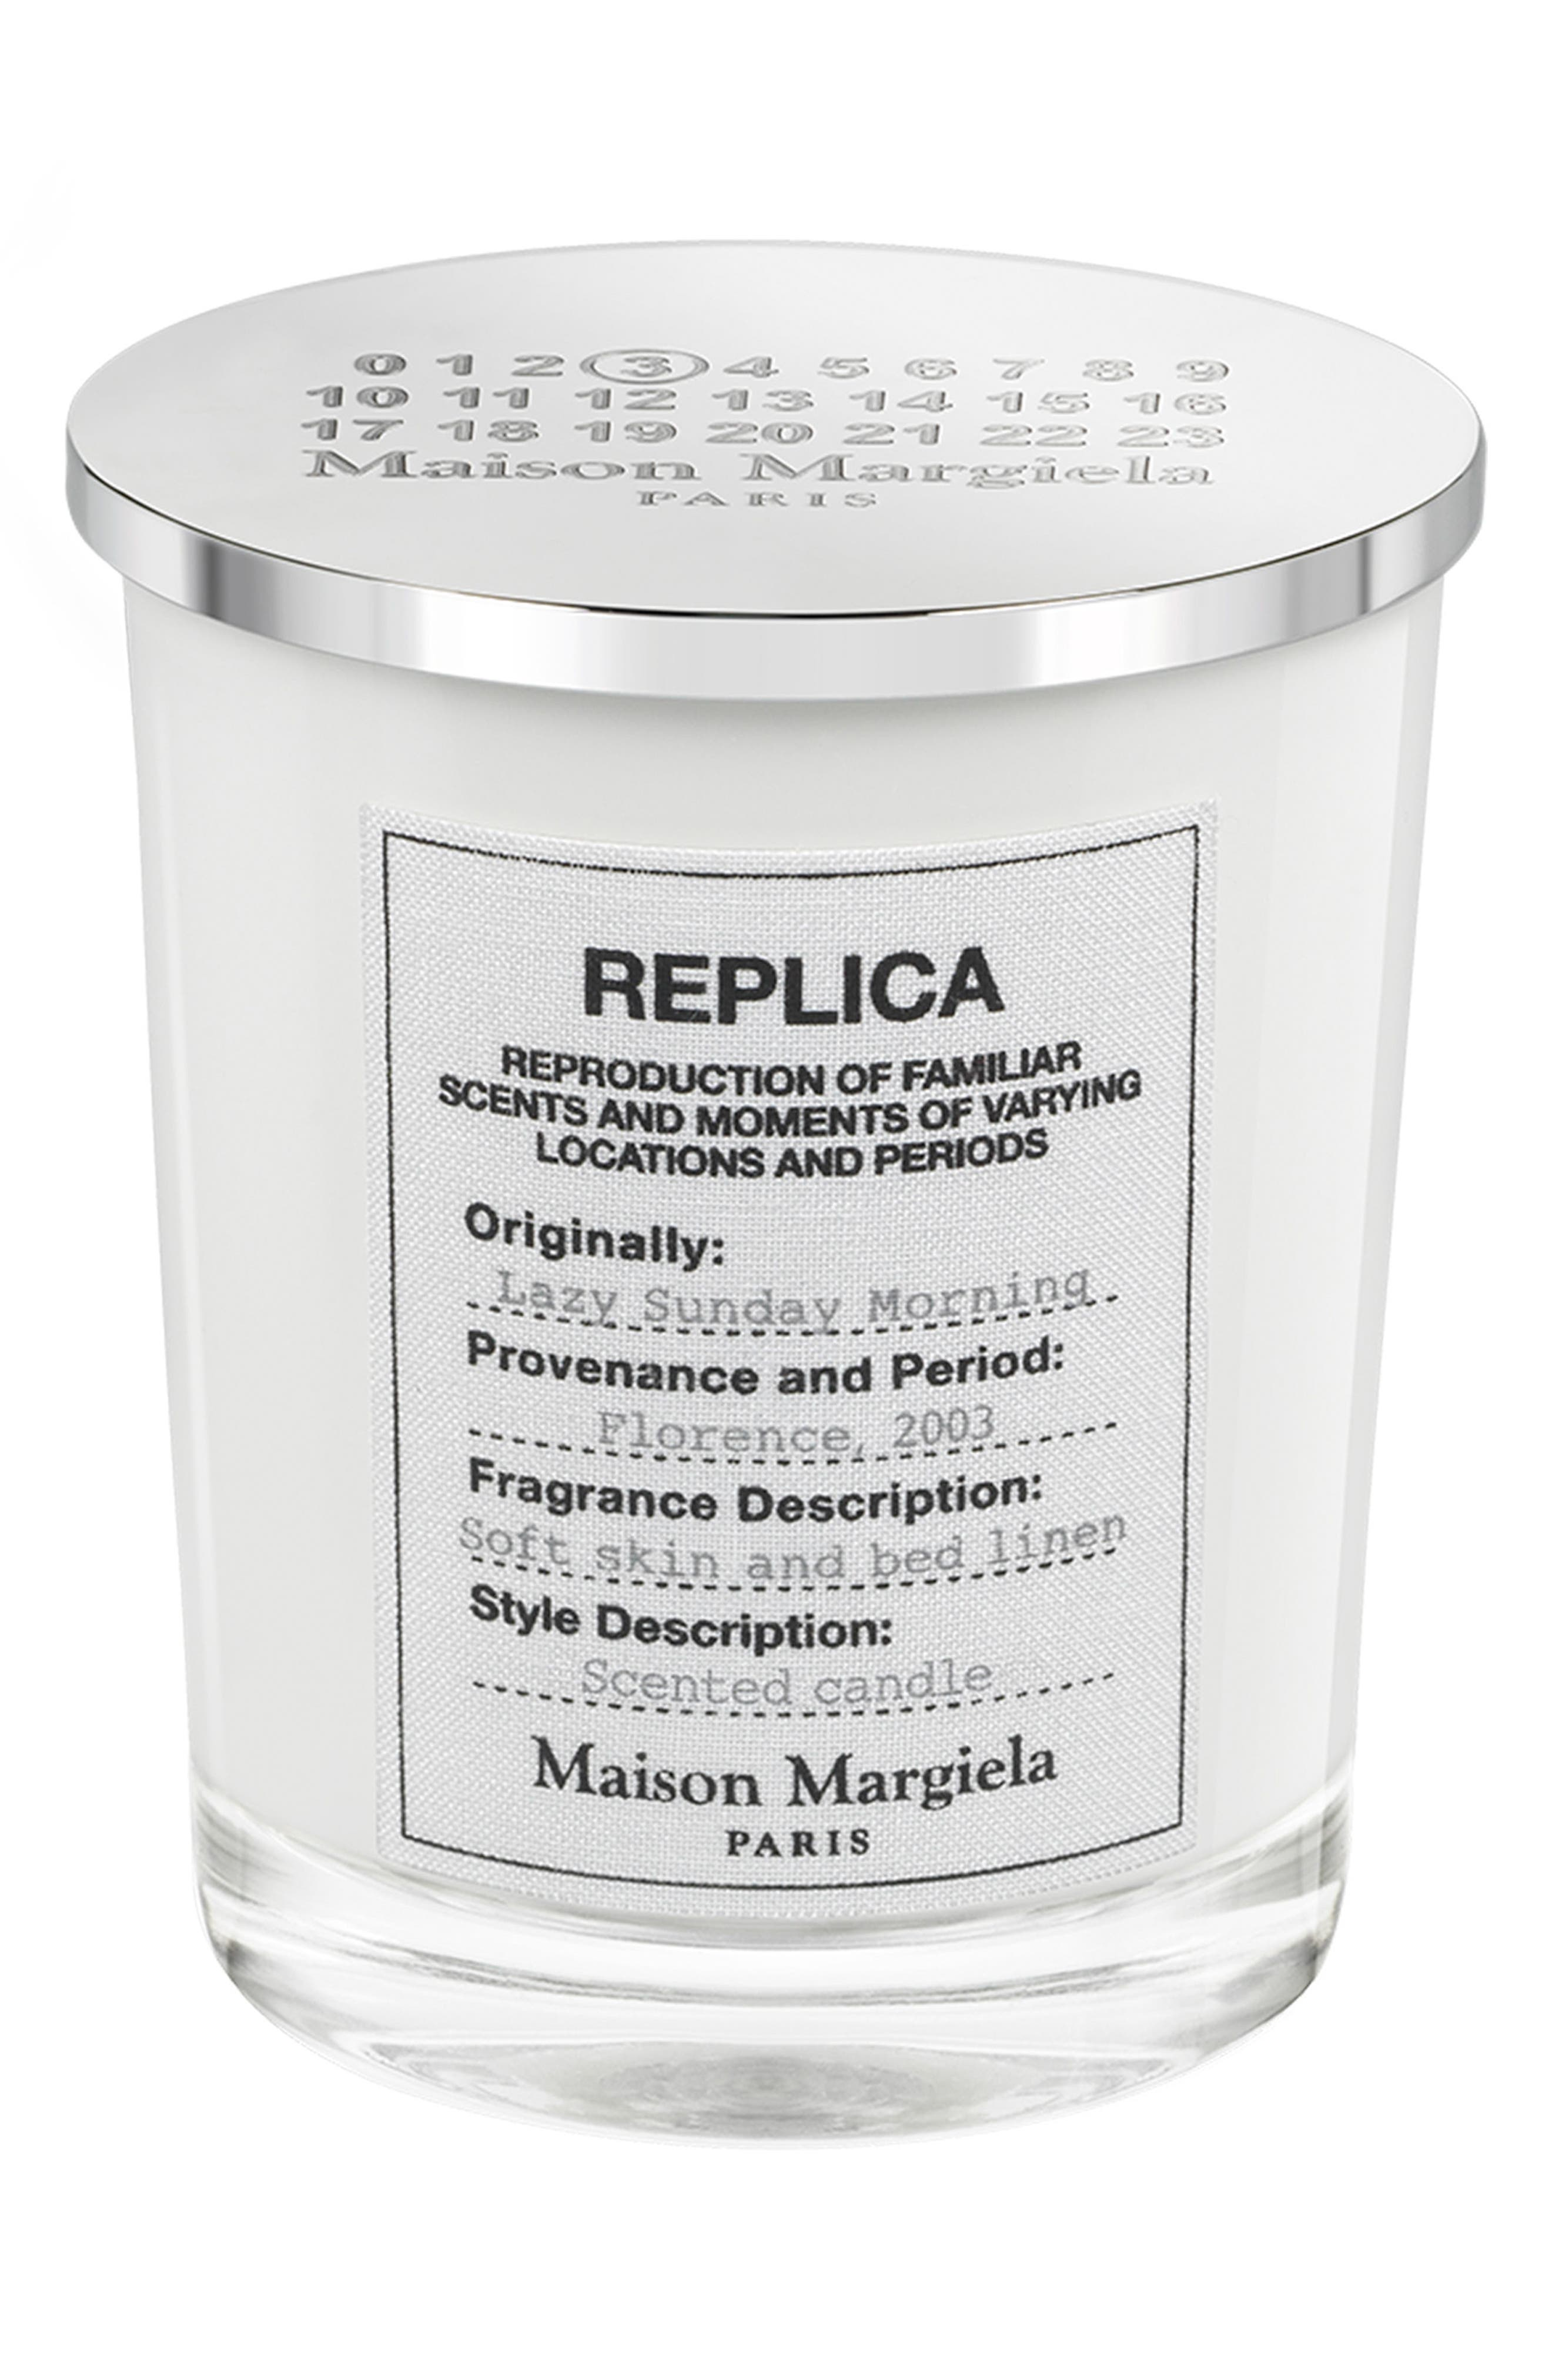 'Replica' Lazy Sunday Morning Scented Candle